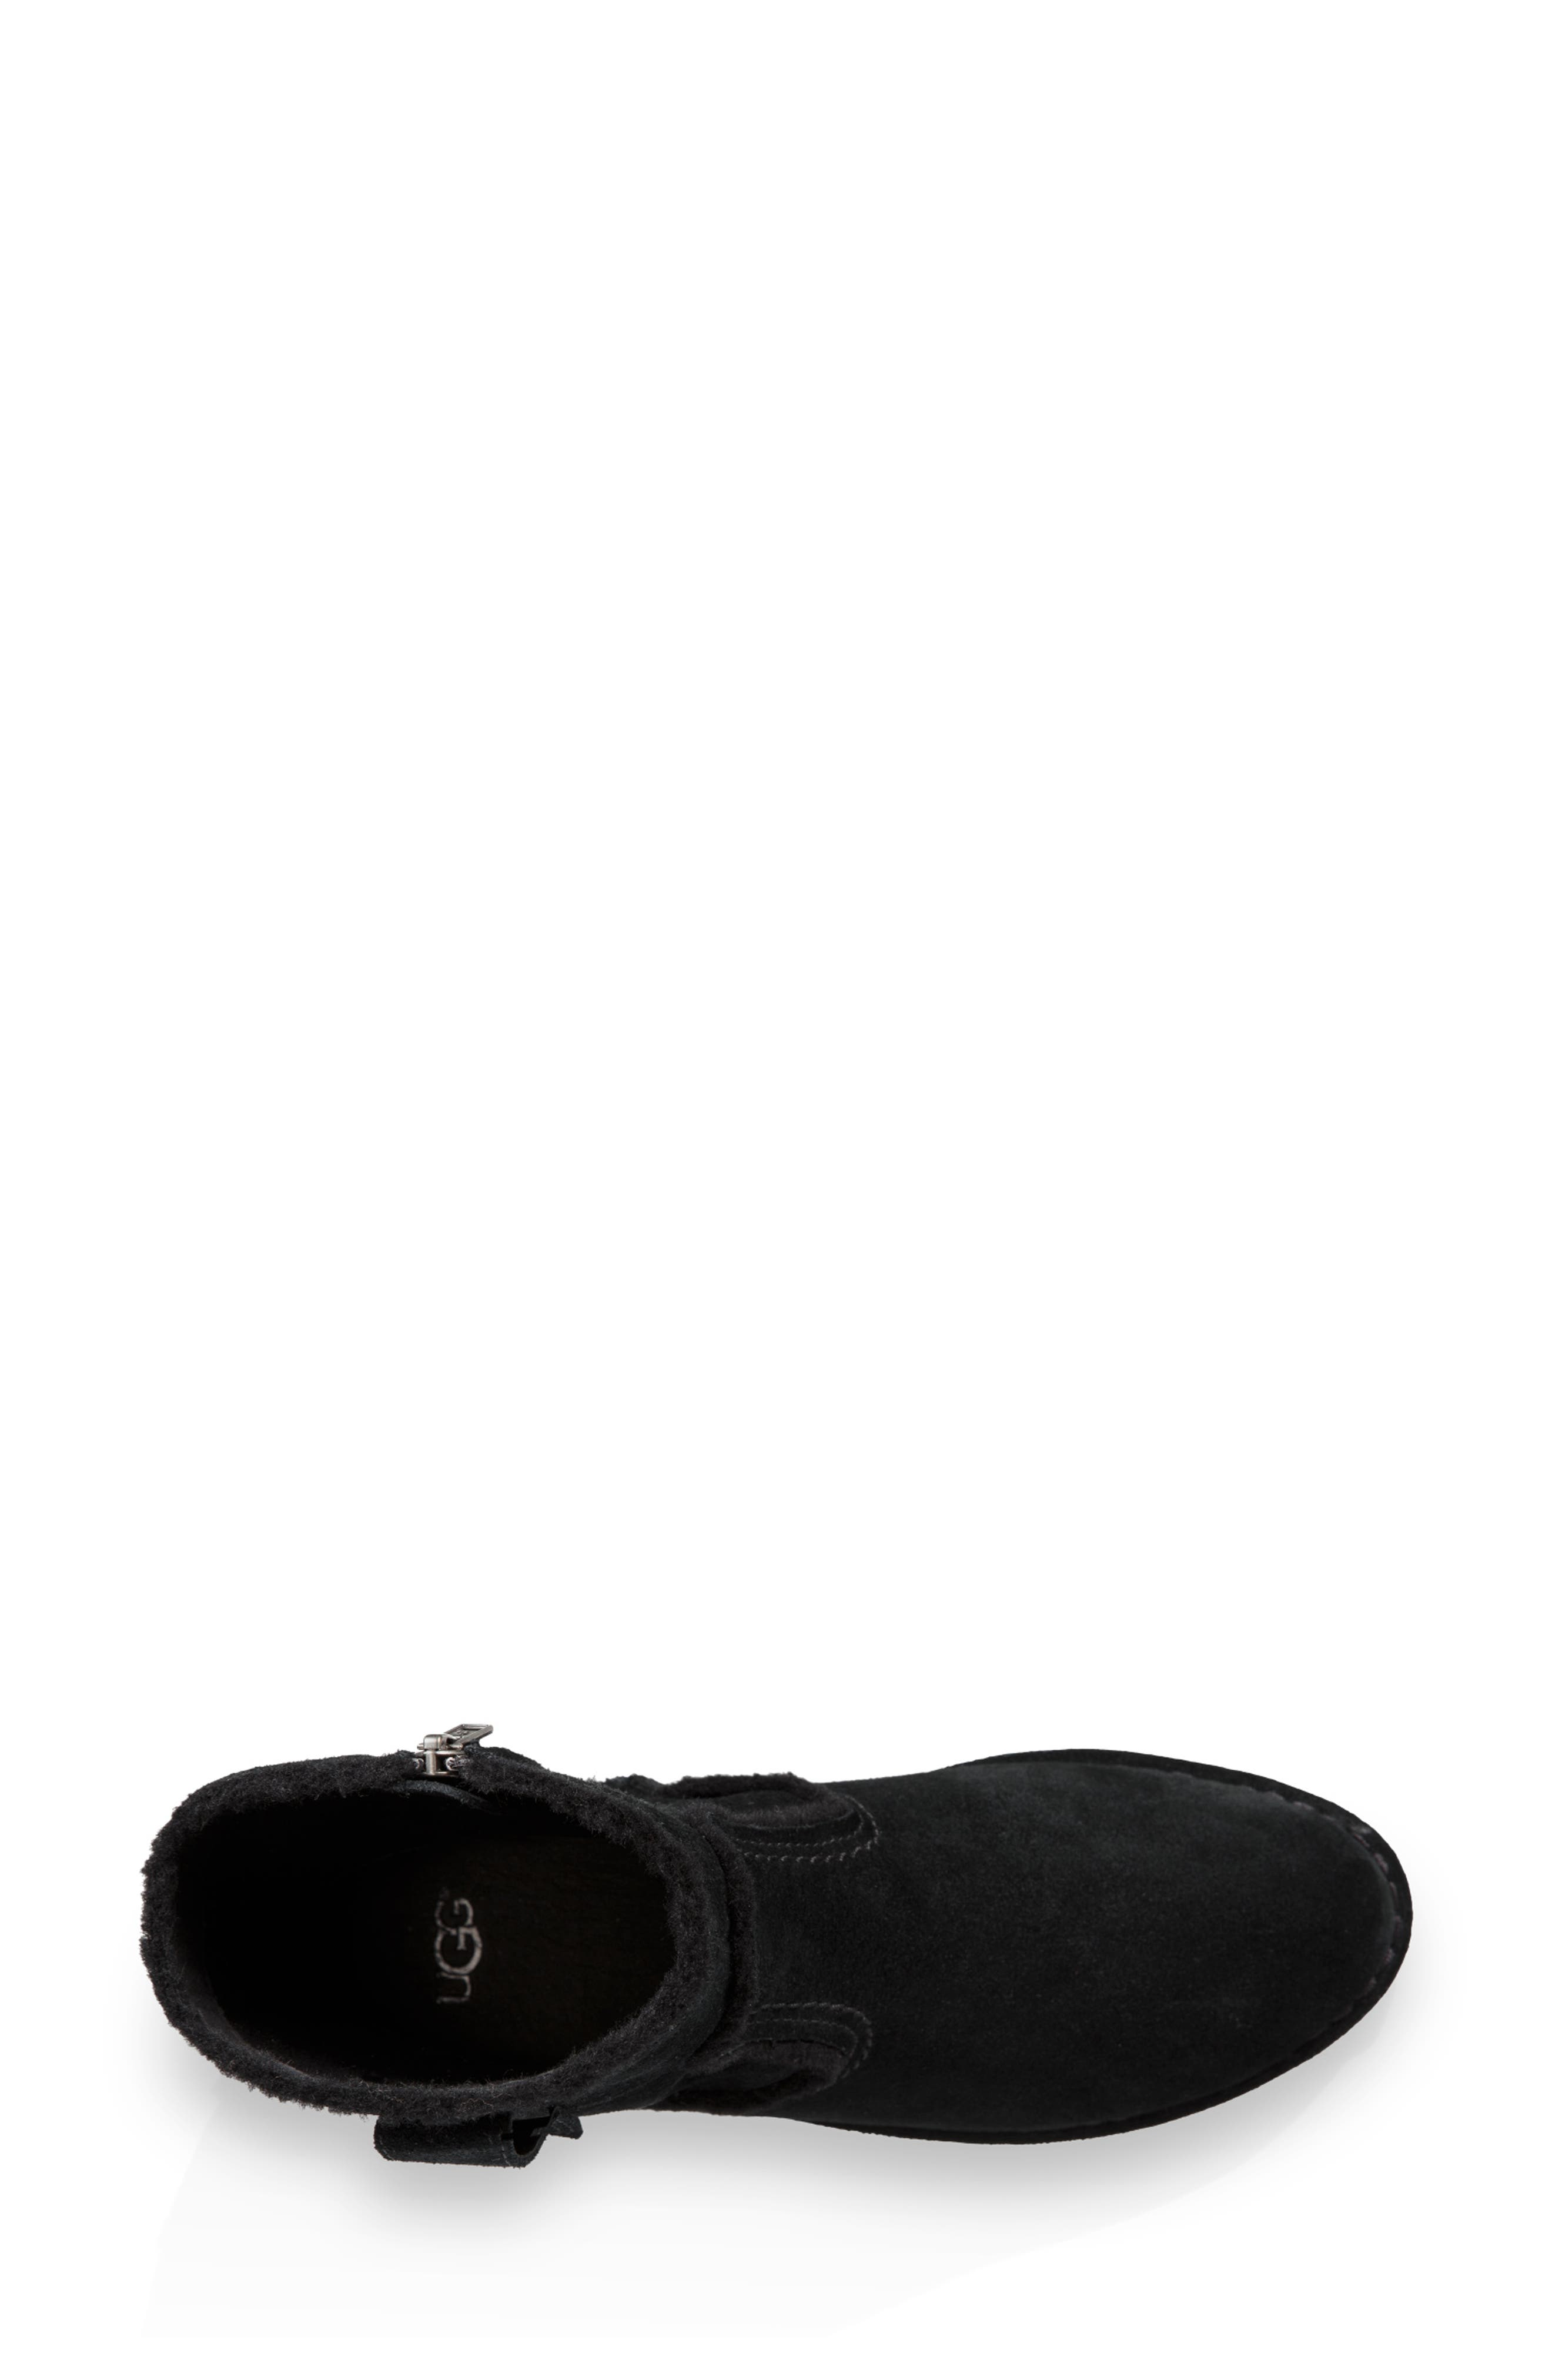 Catica Boot,                             Alternate thumbnail 4, color,                             BLACK SUEDE